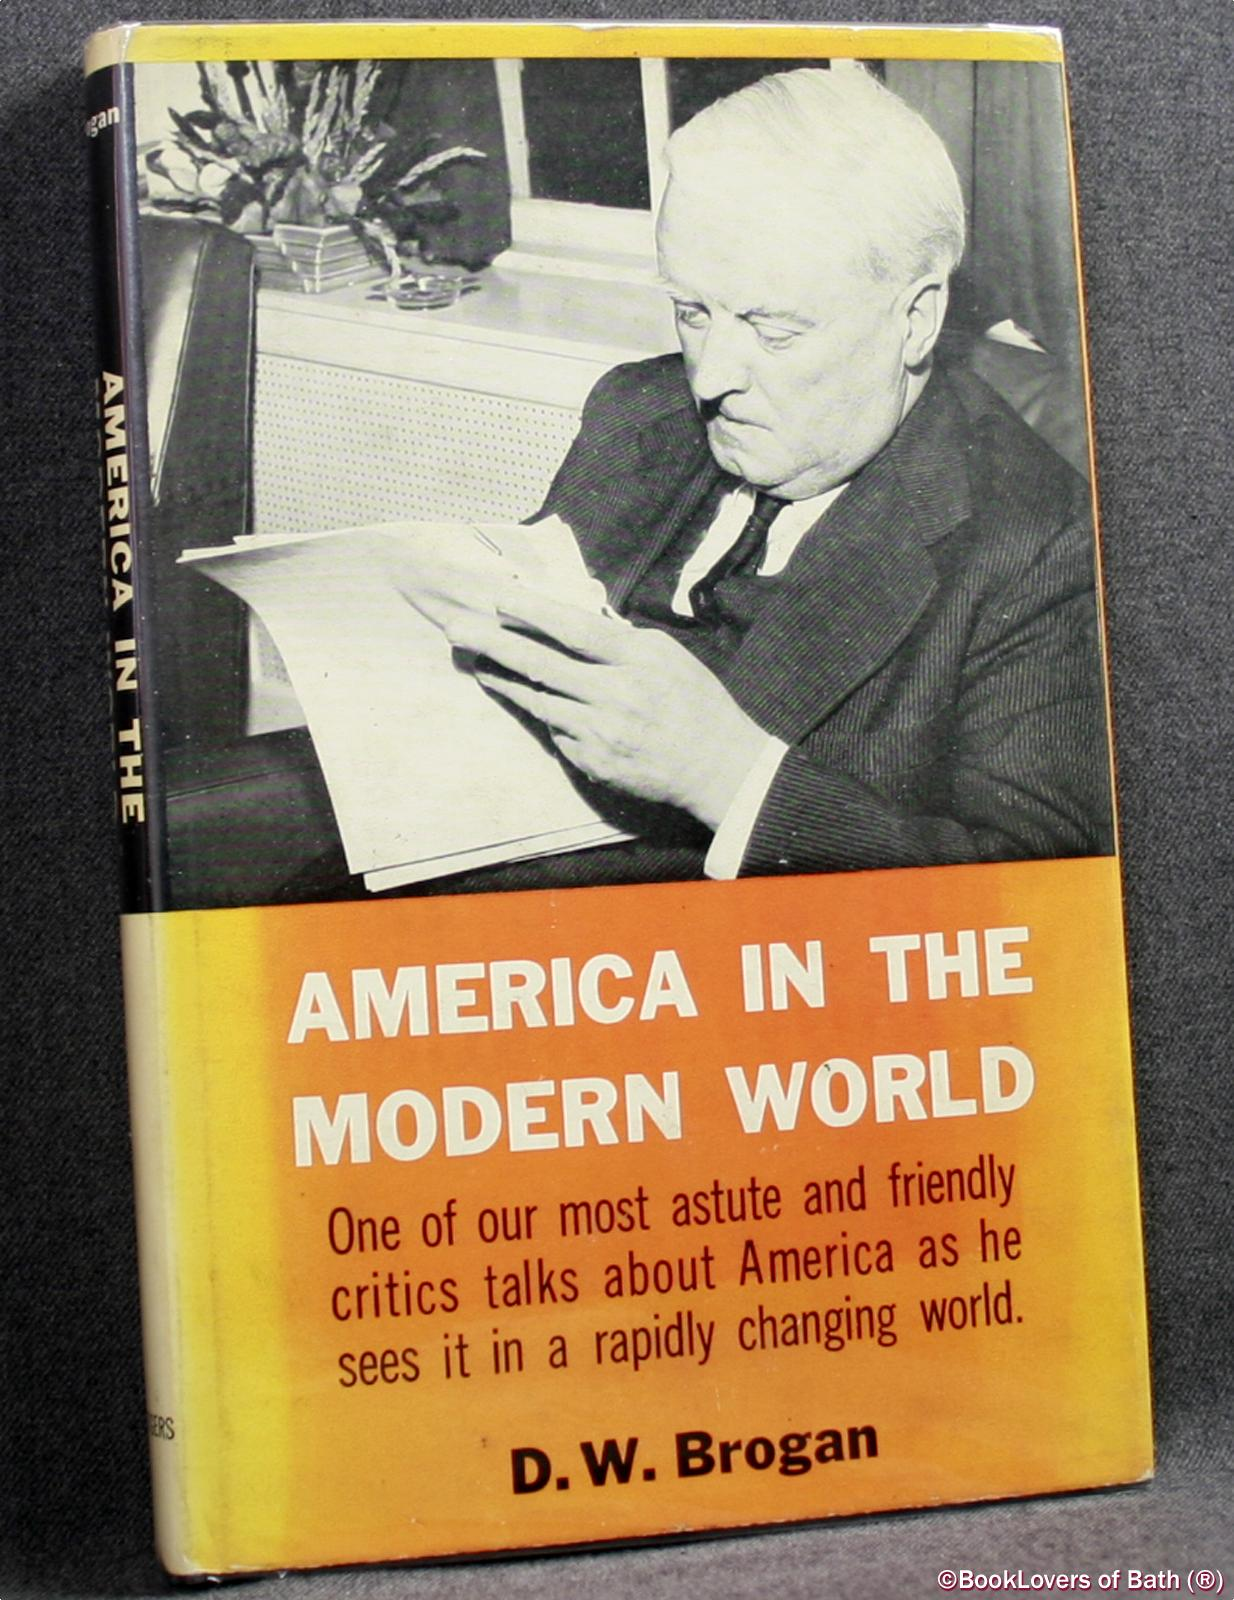 America In The Modern World - D. W. Brogan